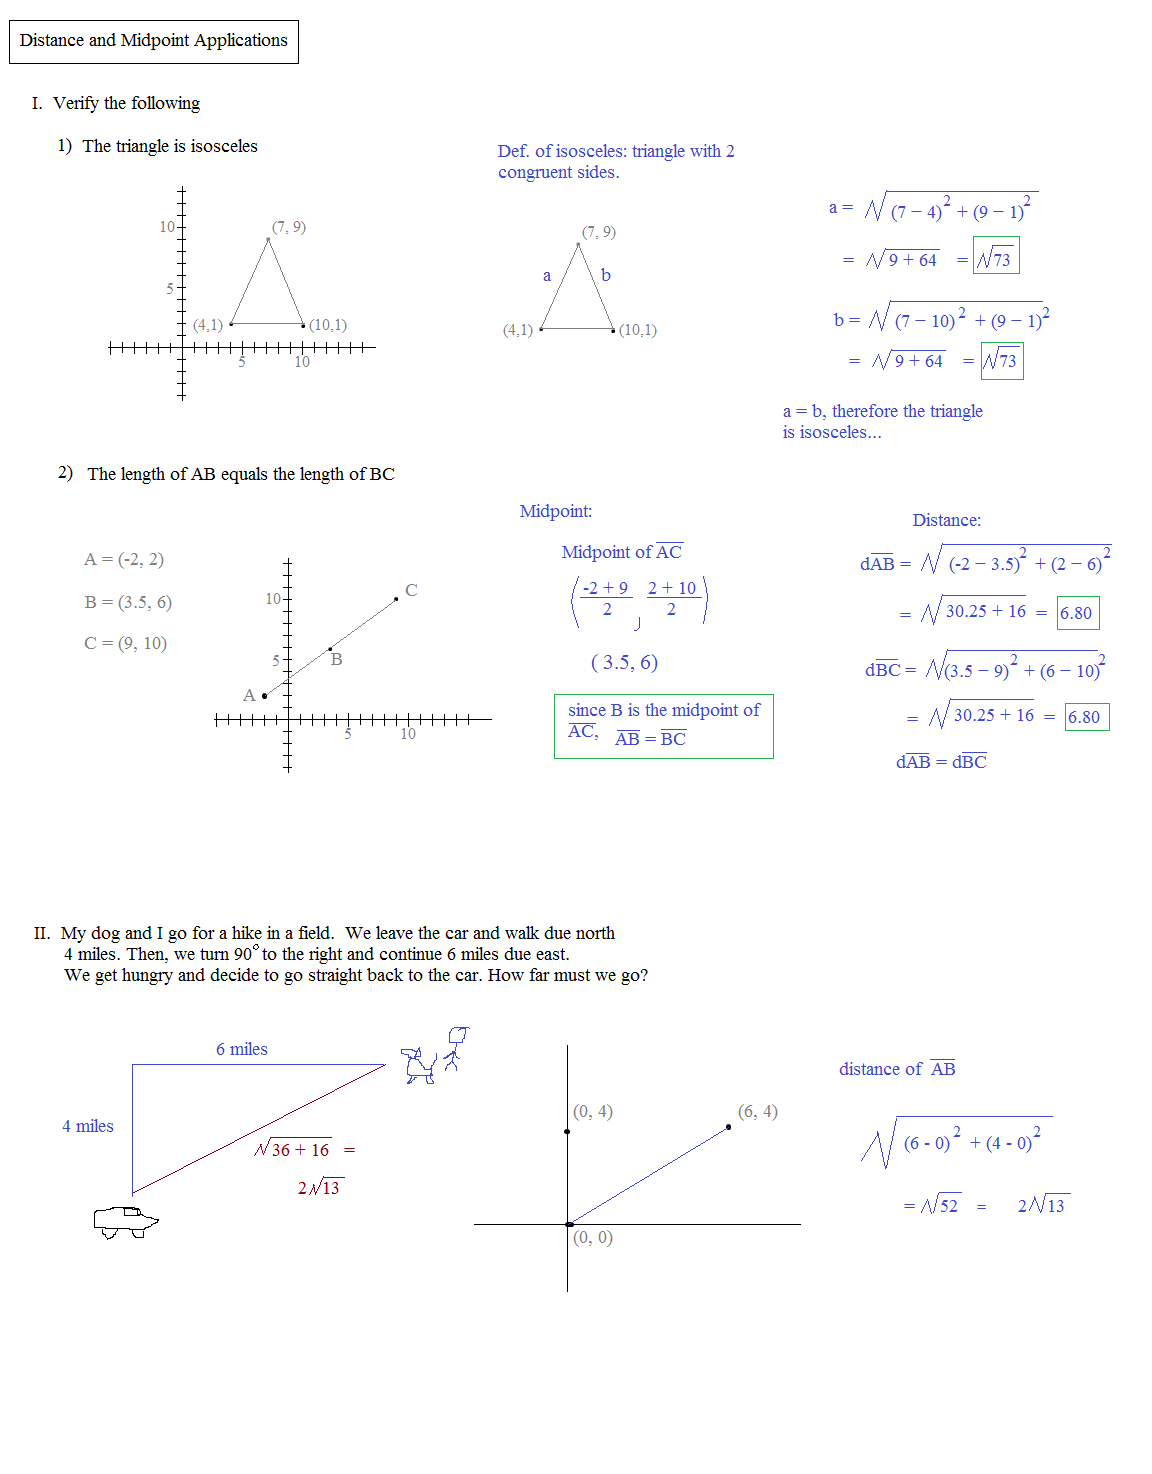 Math Plane - Midpoint and Distance